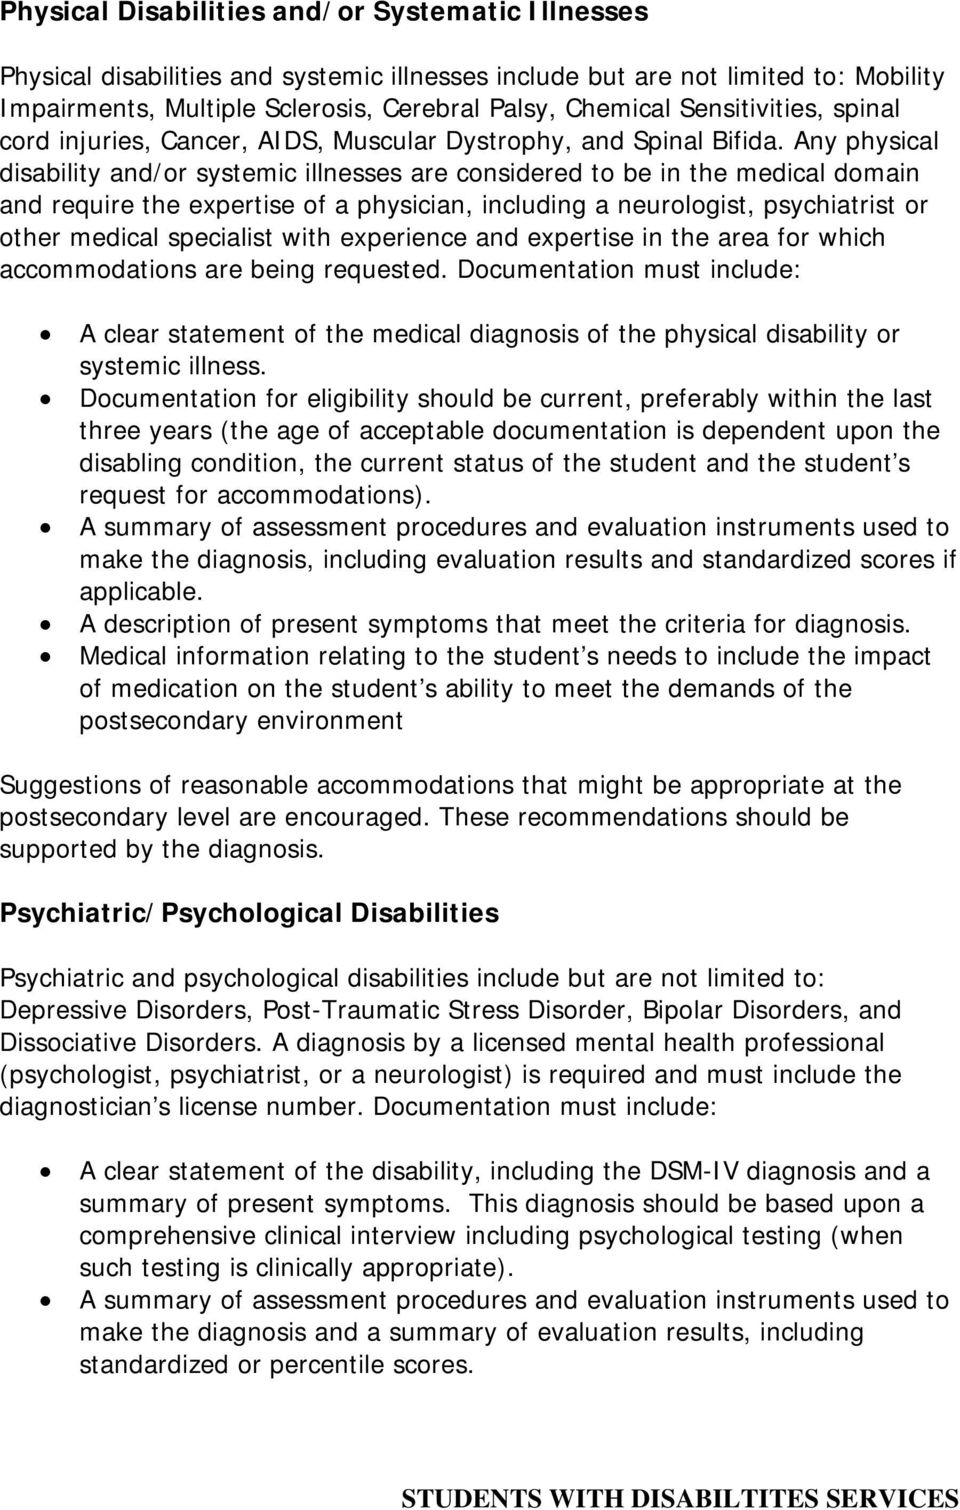 Any physical disability and/or systemic illnesses are considered to be in the medical domain and require the expertise of a physician, including a neurologist, psychiatrist or other medical